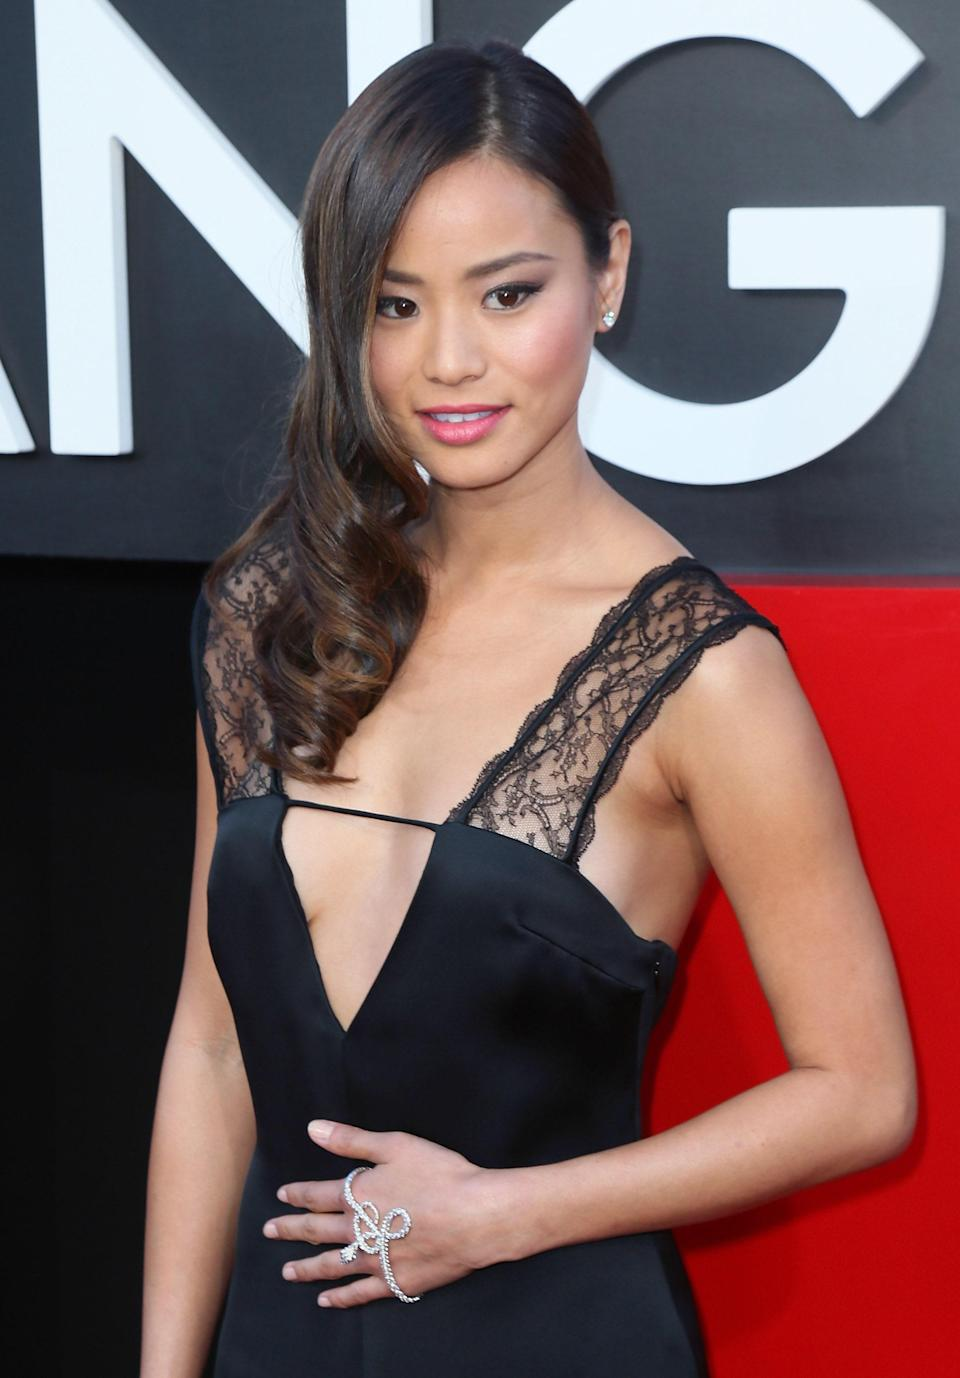 This Asian actress got her start as a reality star on MTV's <em>The Real World: San Diego</em>. When the show wrapped, Jamie used her newfound fame to land dozens of television and film roles, including parts in <em>The Hangover Part III,</em> <em>Days of Our Lives, ER, CSI,</em> and more.